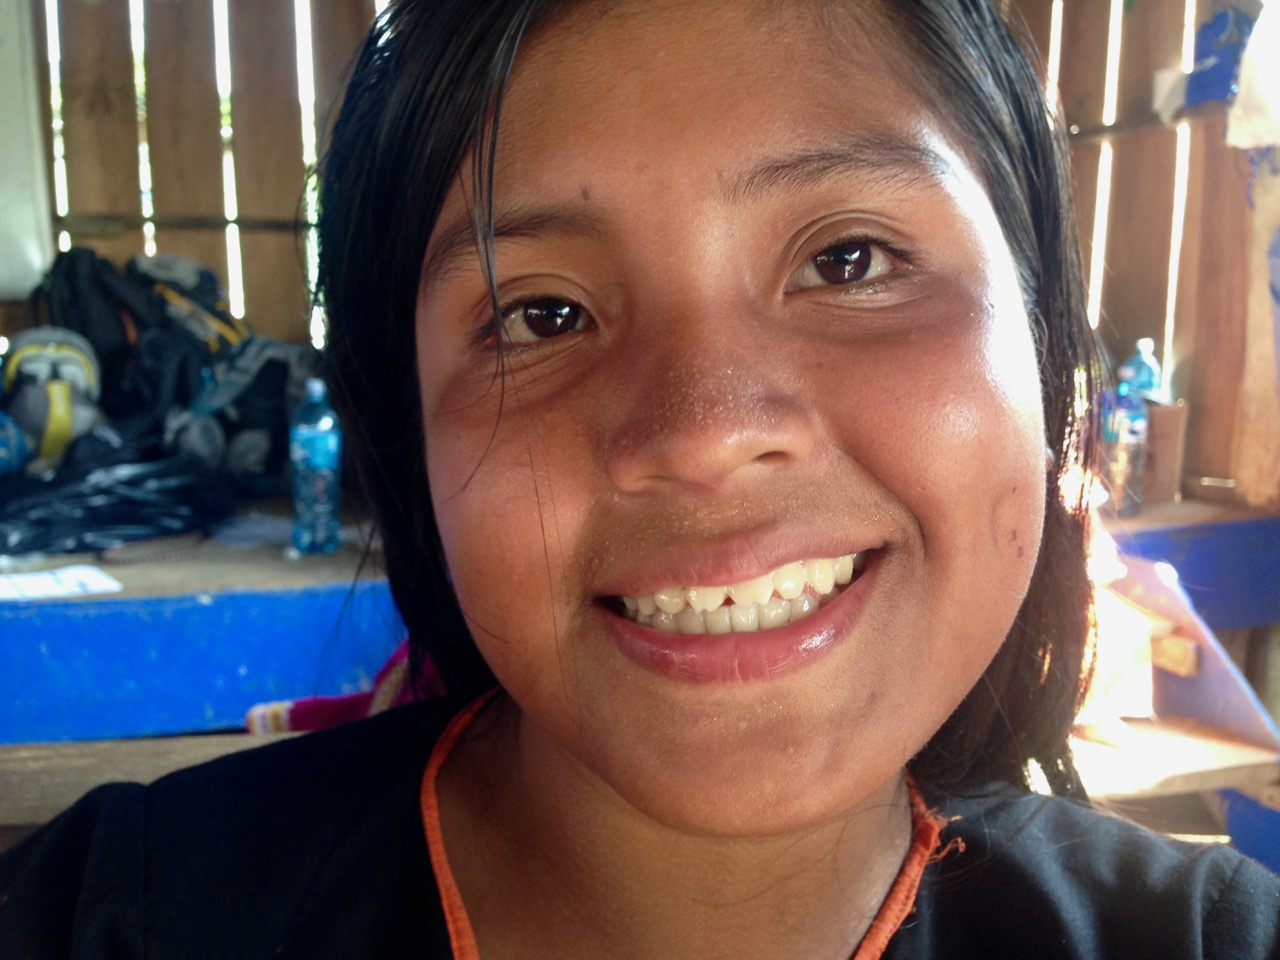 Young Ngabe Woman With Traditional Filed Teeth